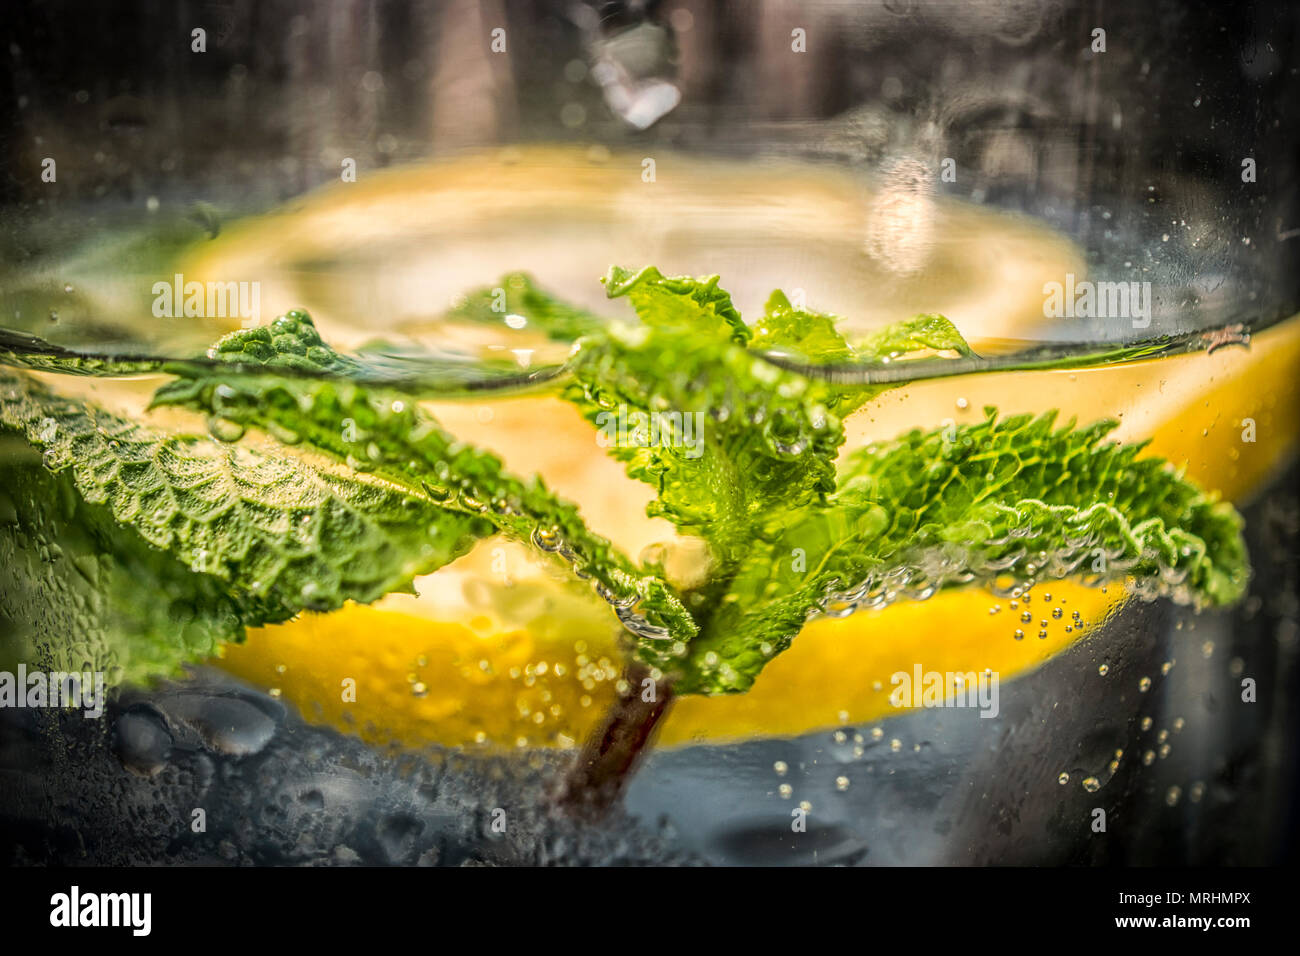 Mineral water with lemon and mint - Stock Image